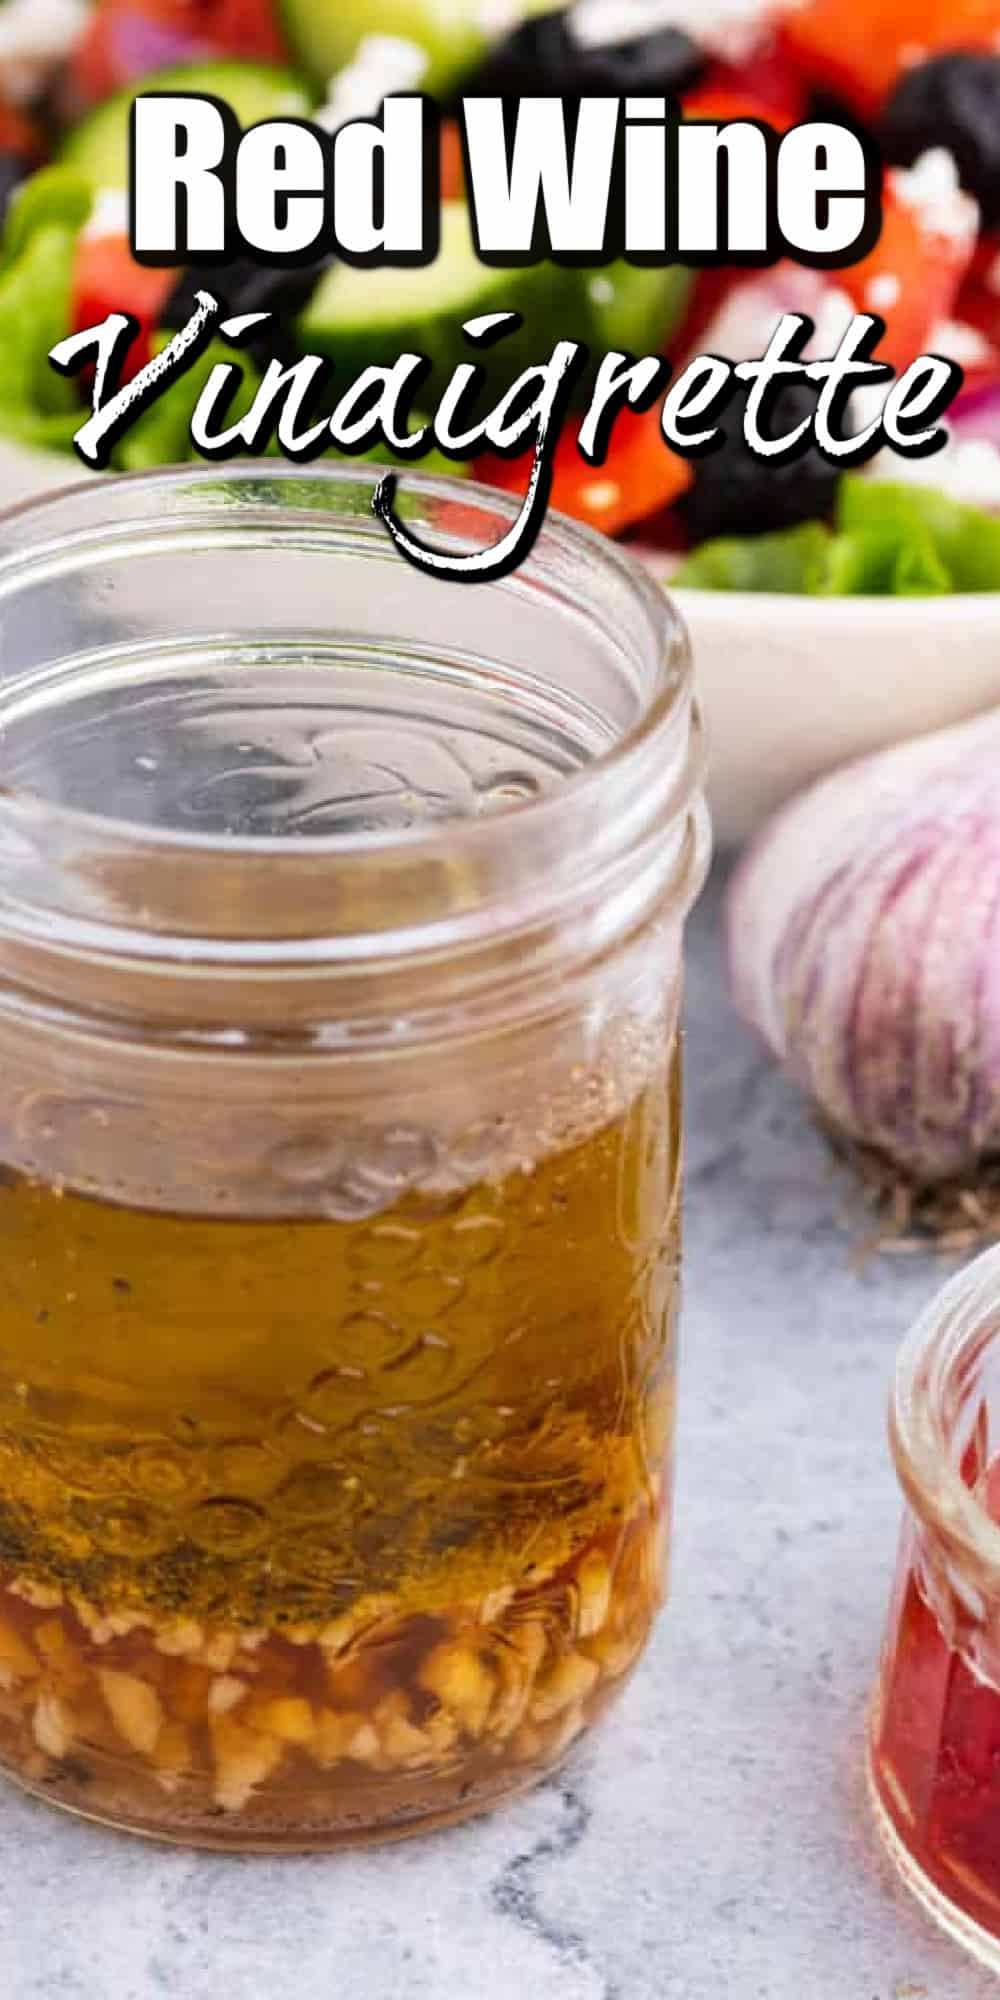 Red Wine Vinaigrette Is A Quick And Easy Salad Dressing With A Wonderful Zesty Flavor Suitable In 2021 Red Wine Vinaigrette Citrus Salad Dressing Vinaigrette Recipes [ 2000 x 1000 Pixel ]